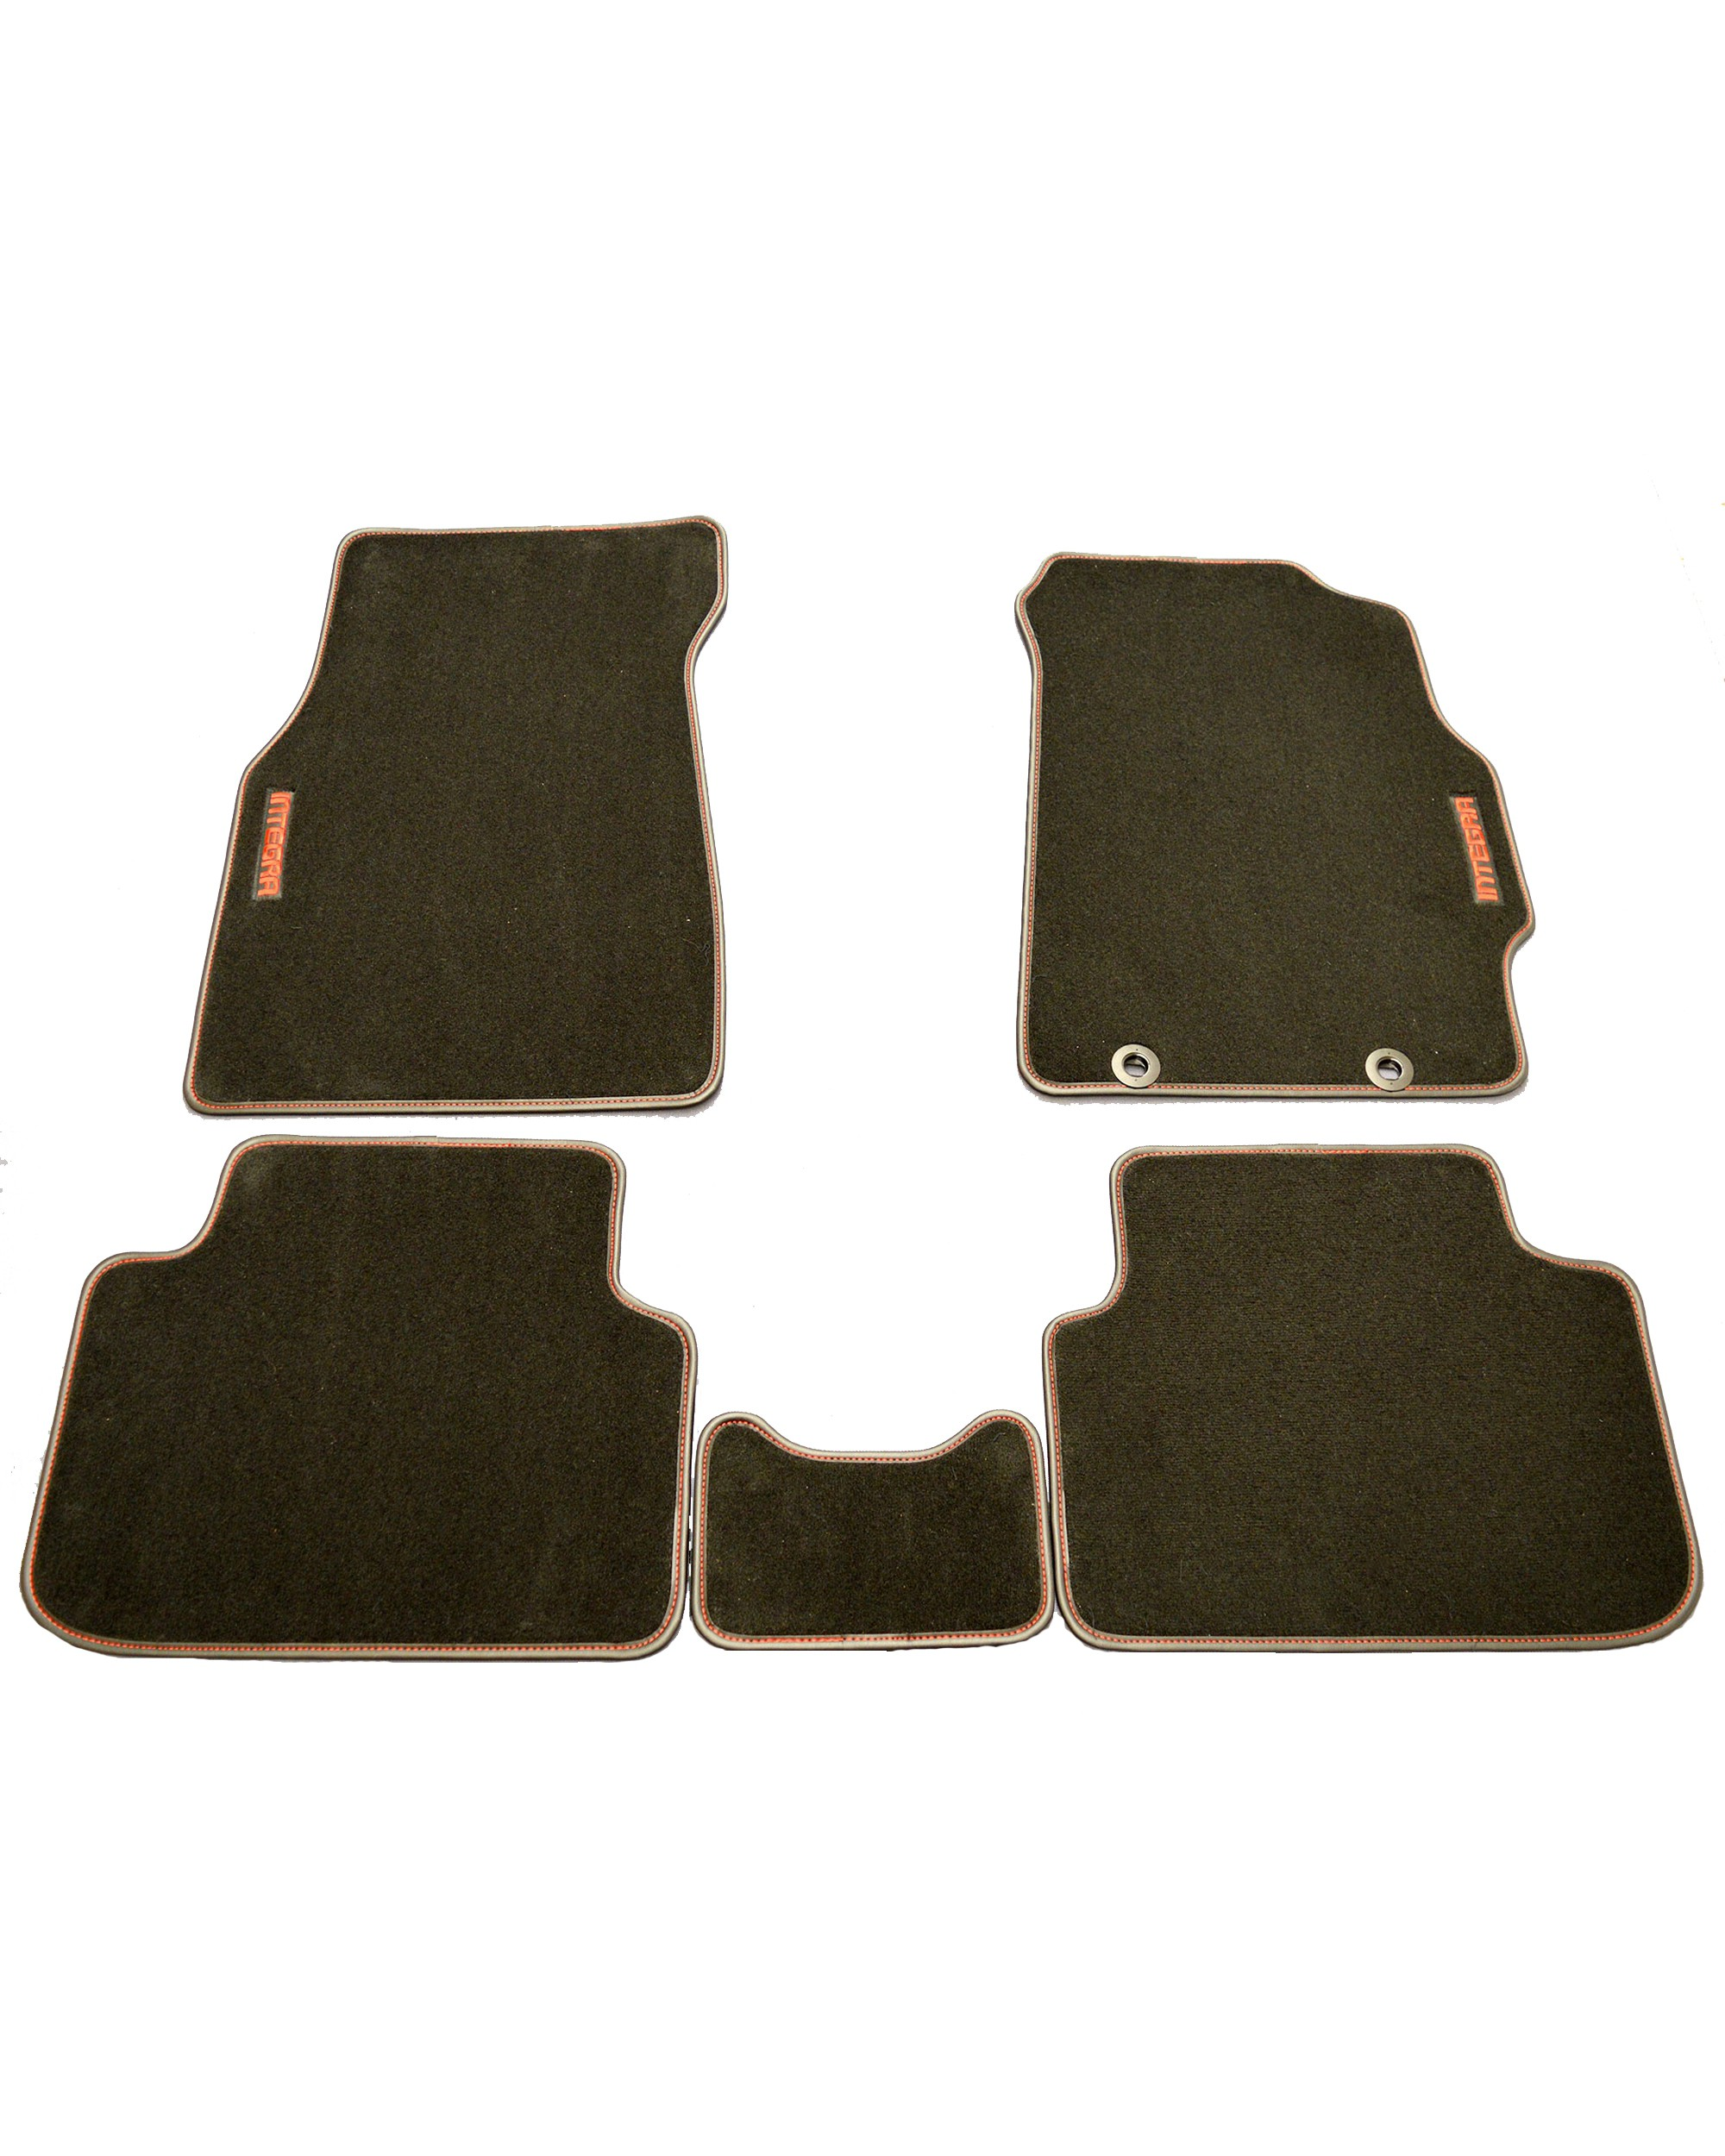 Honda Integra DC2 5 piece Luxury Tailored Floor Mats